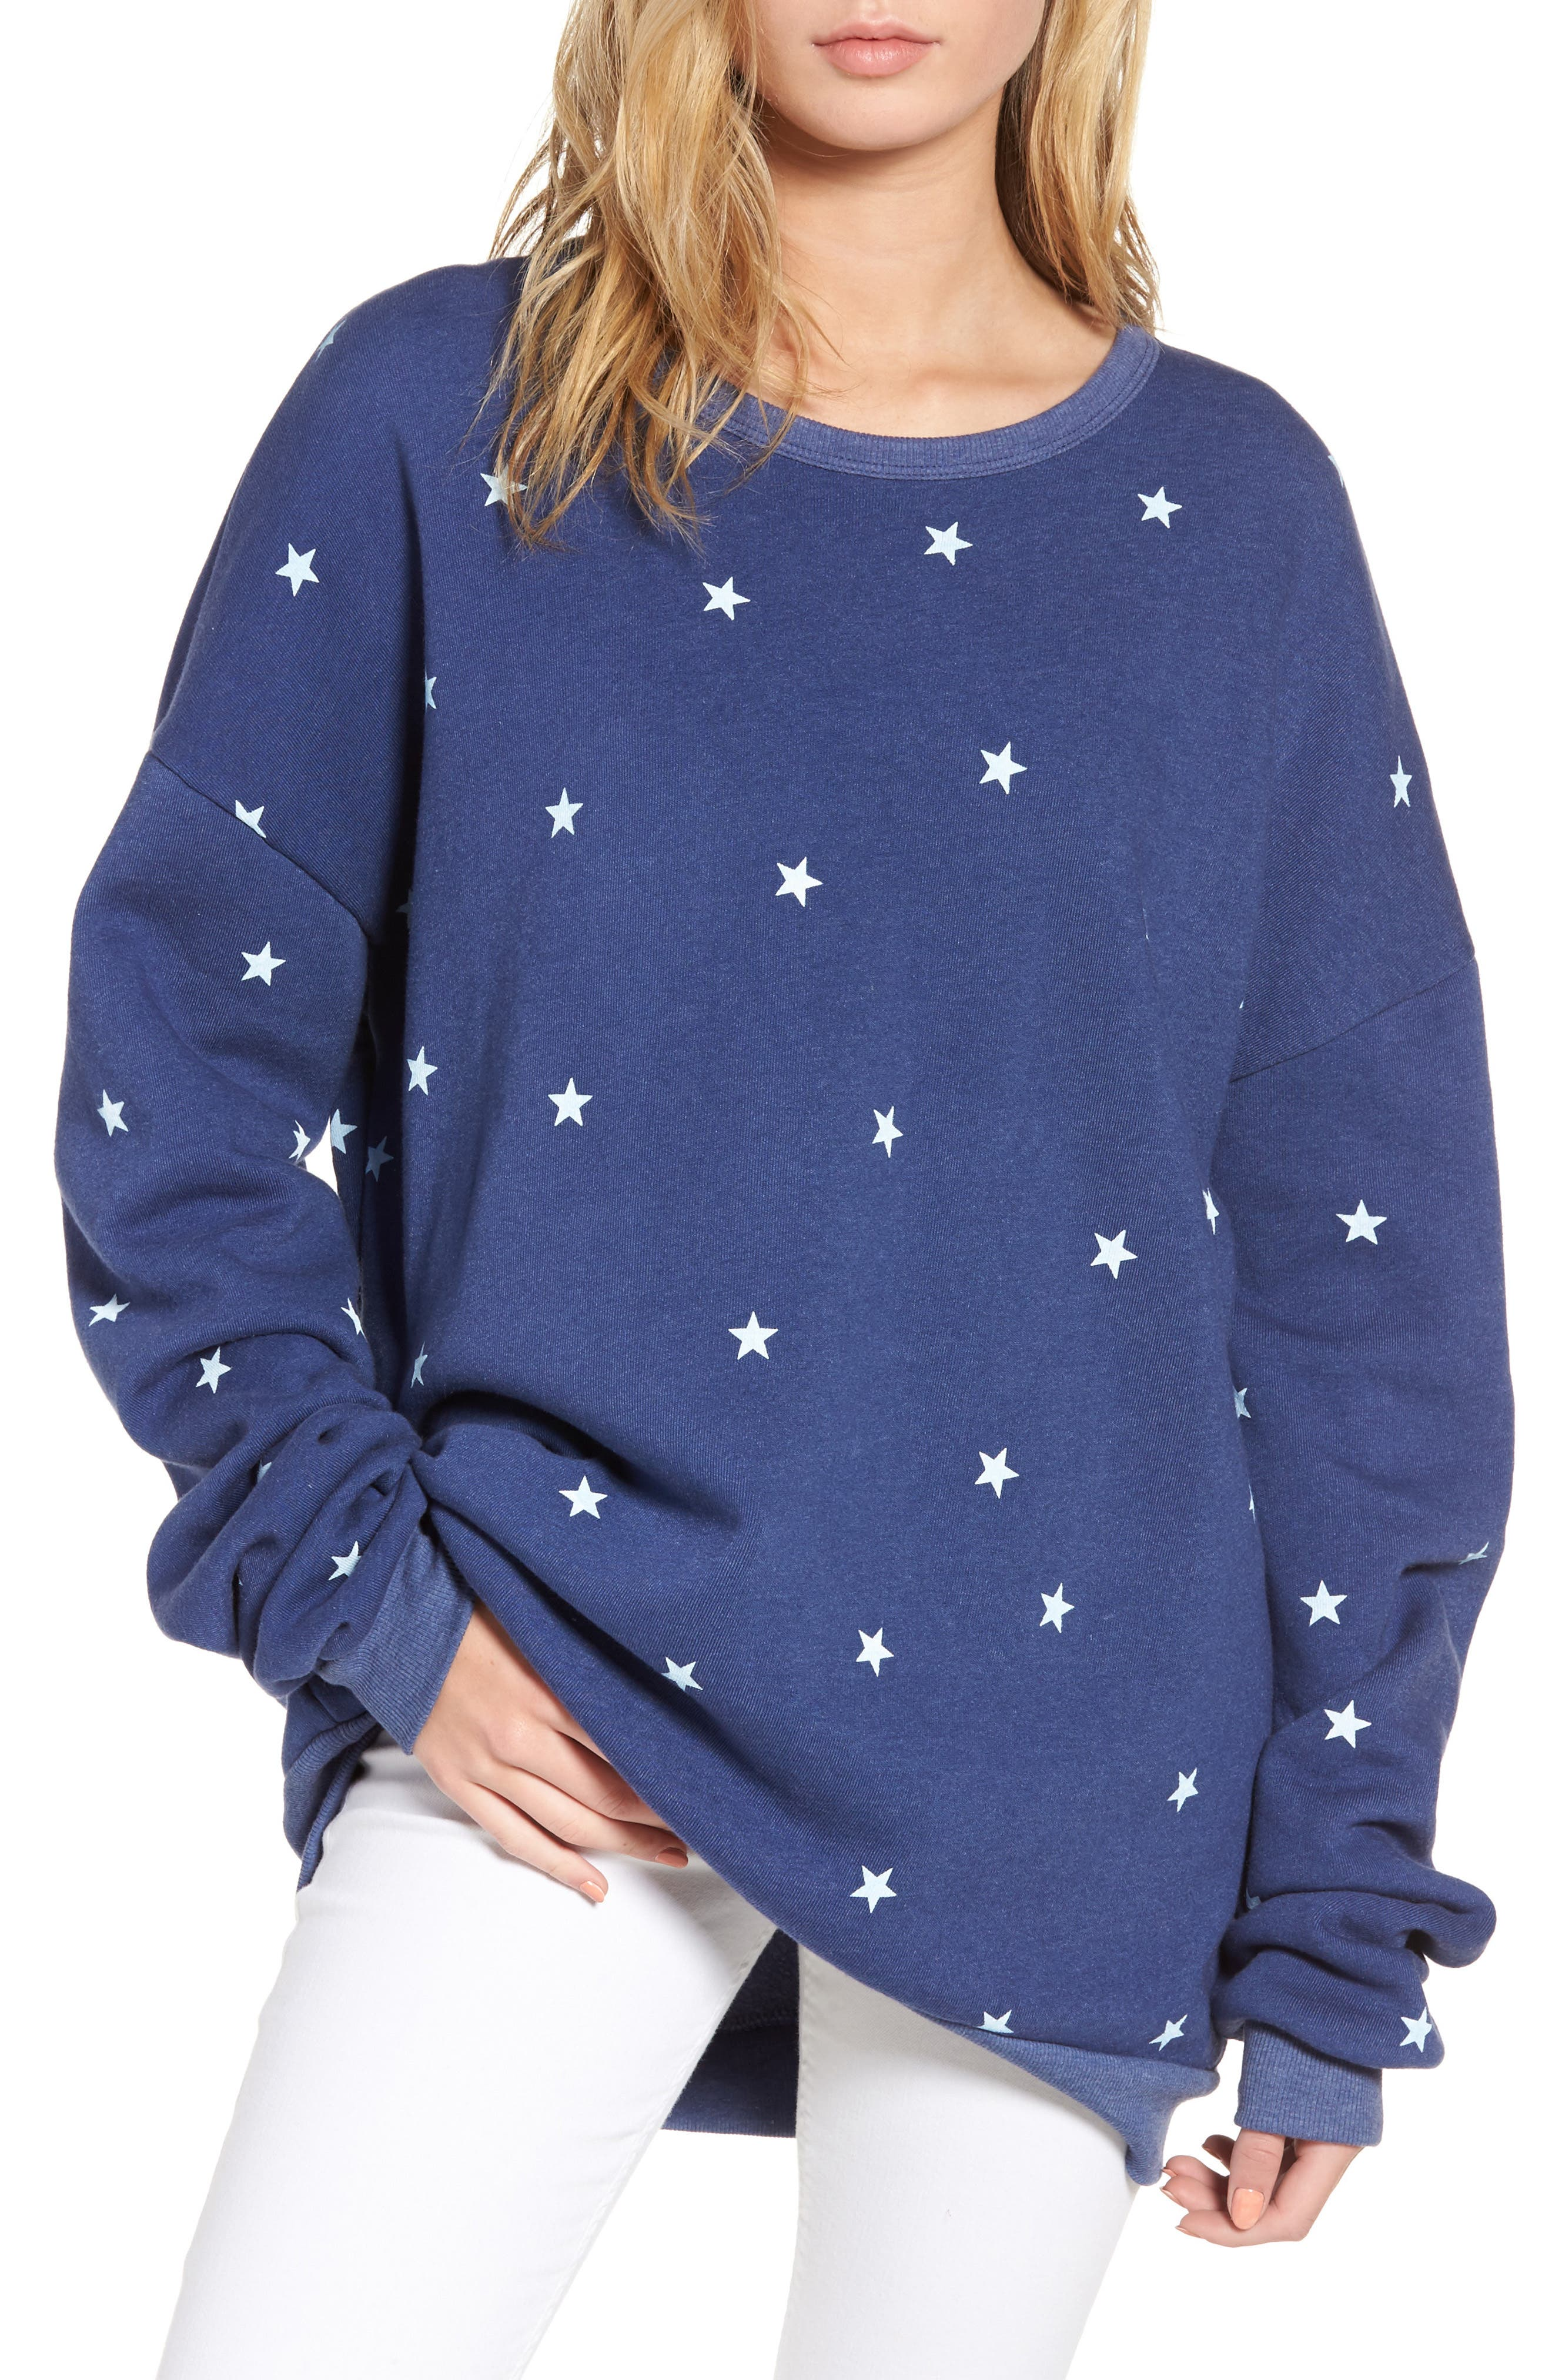 Main Image - Wildfox Star Tunic Sweatshirt